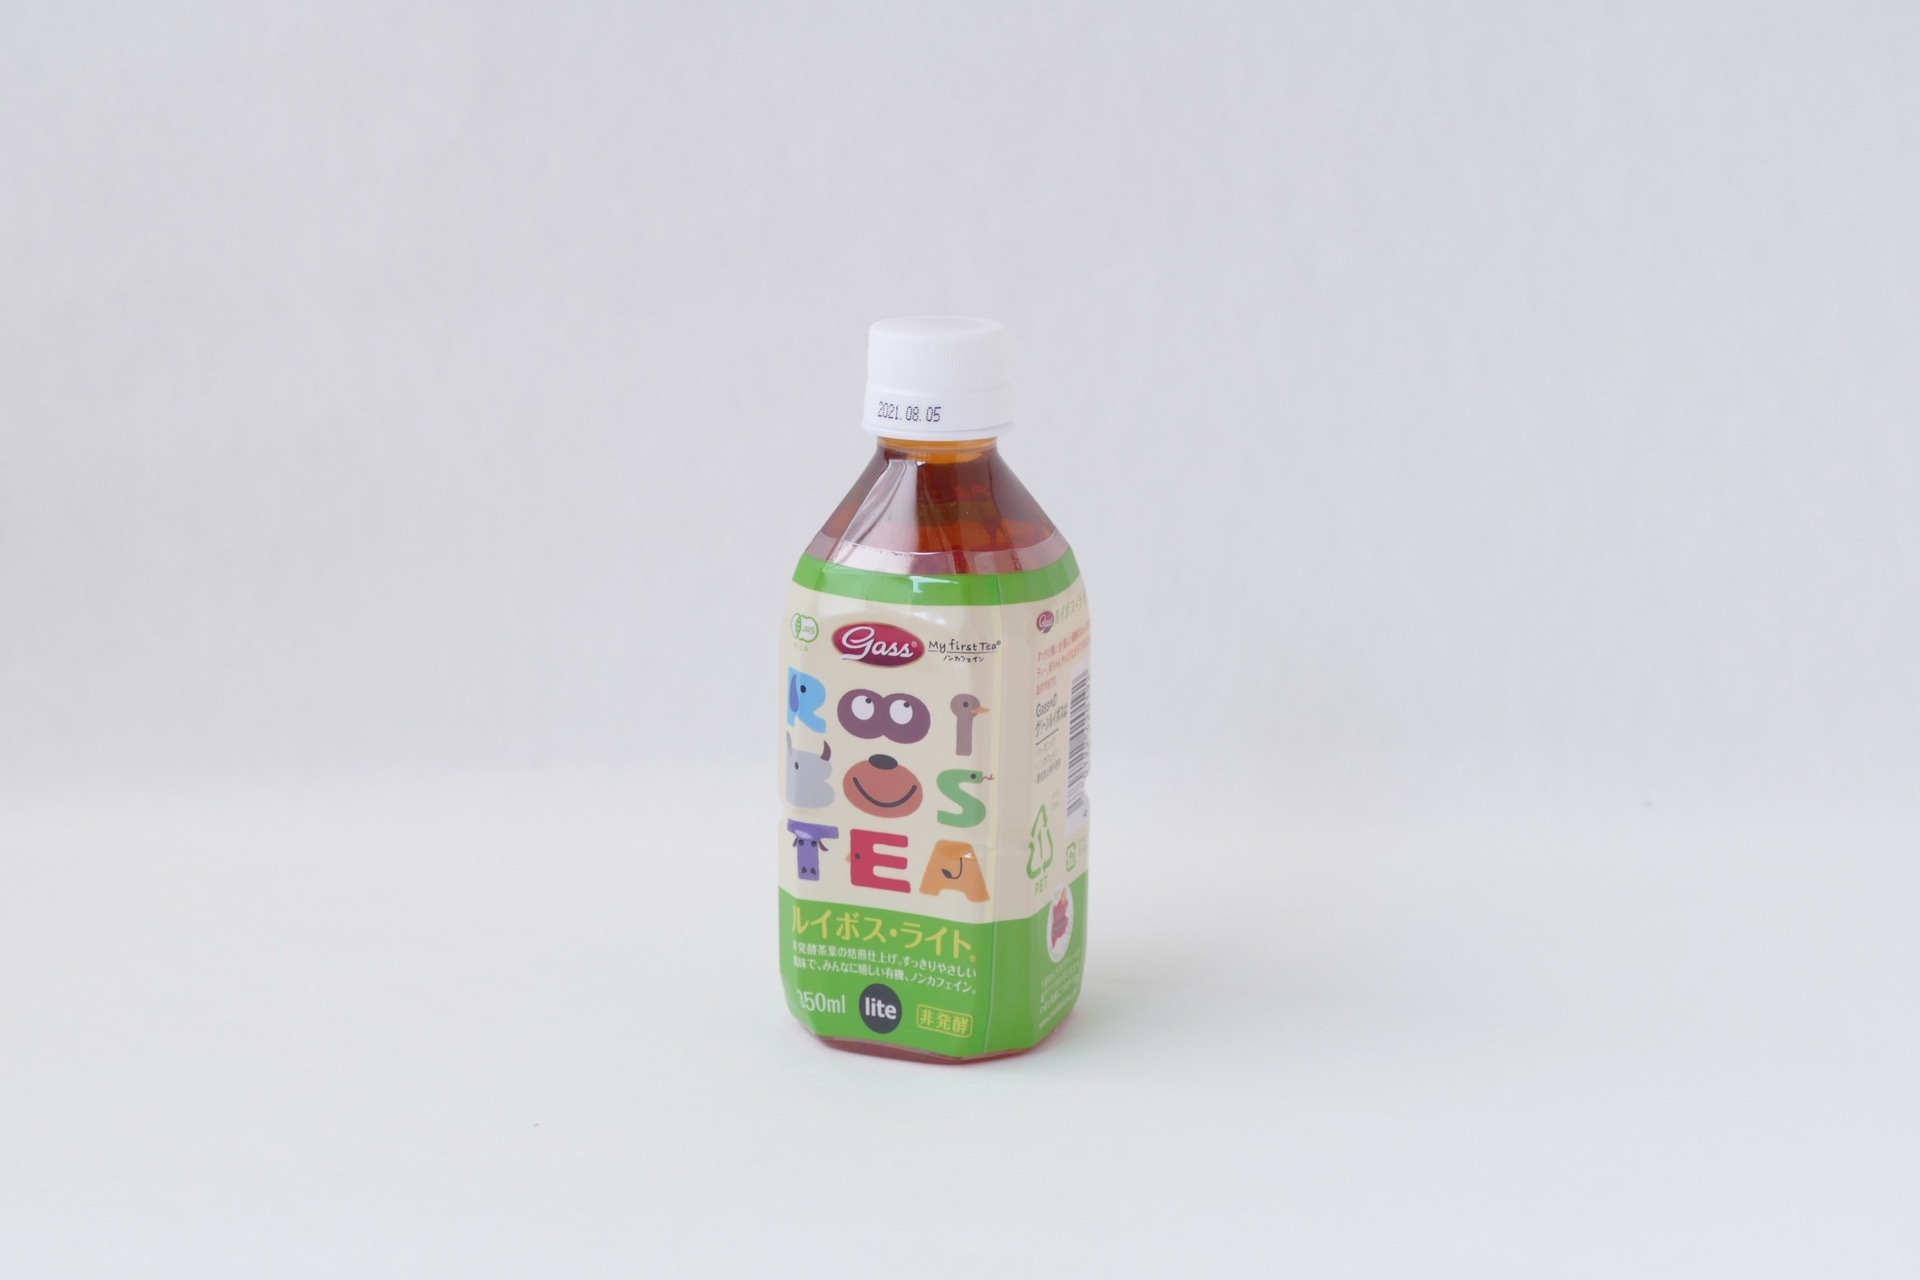 Gass ルイボスライト 350ml